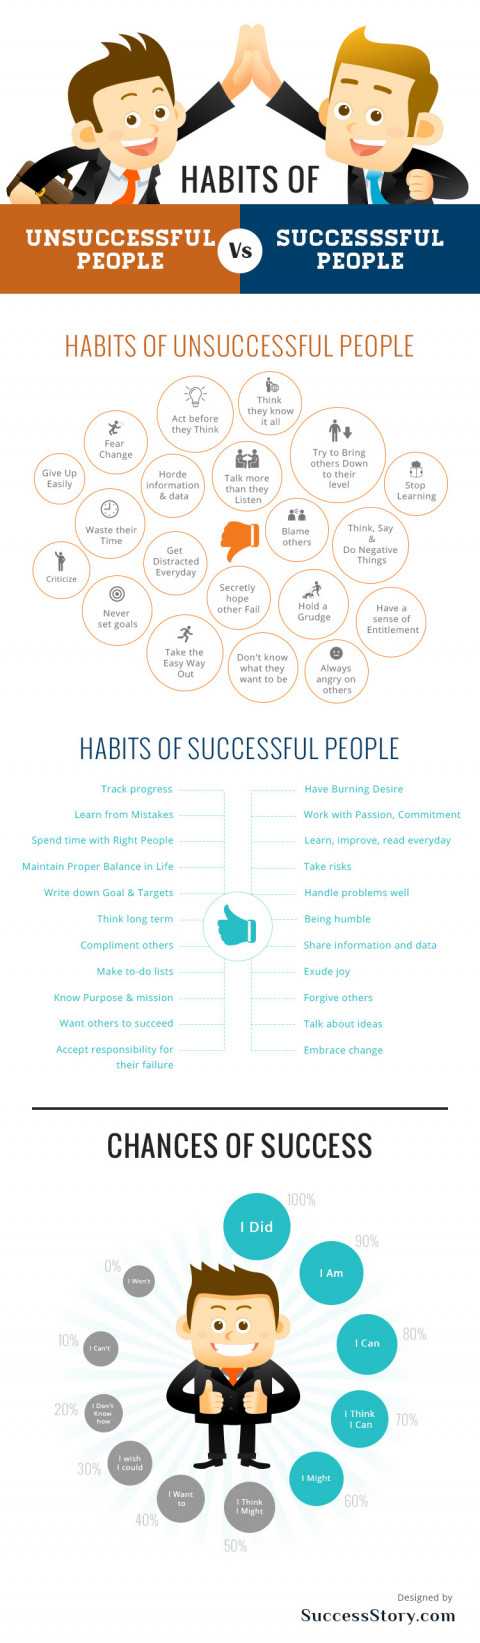 Habits of Unsuccessful People Vs Successful People